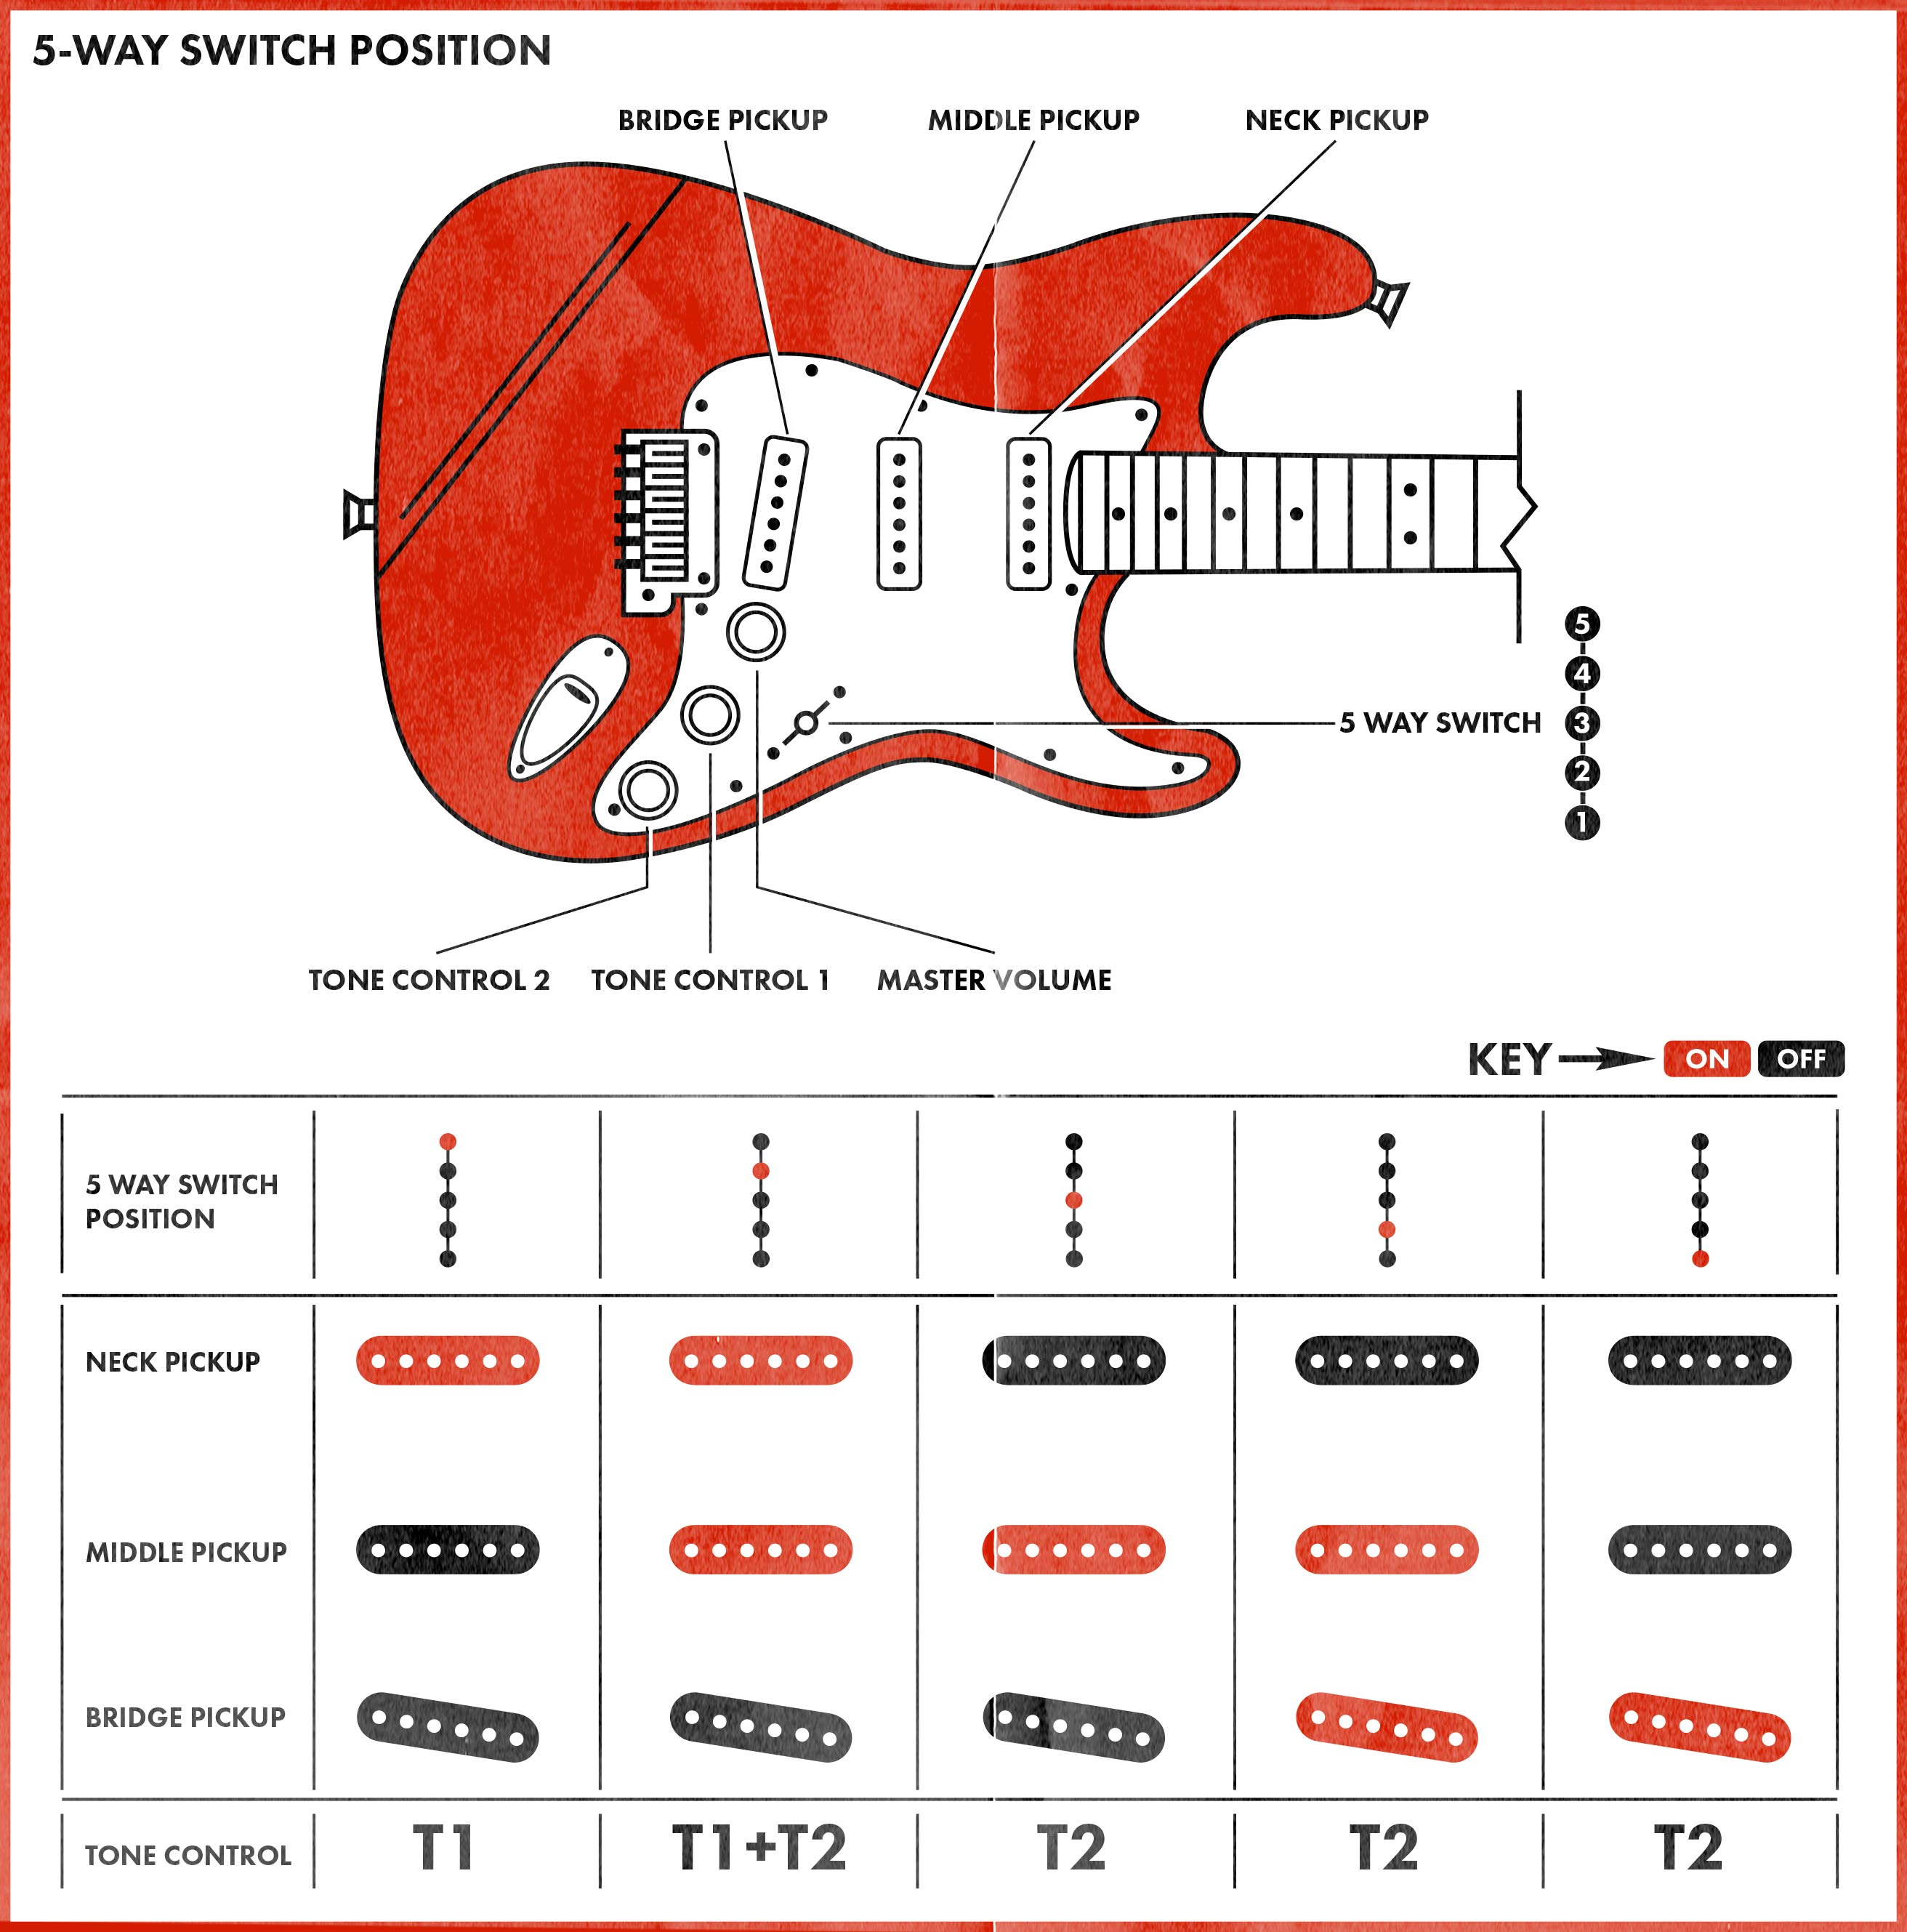 Charming 4pdt Switch Schematic Thin Www Bulldog Security Diagrams Com To Round Ibanez Srx3exqm1 Bulldog Car Alarms Young Bulldog Security Remote Car Starter BrightWiring Dimarzio Pickups Sounds Aplenty: The Stratocaster Pickup Selector Switch